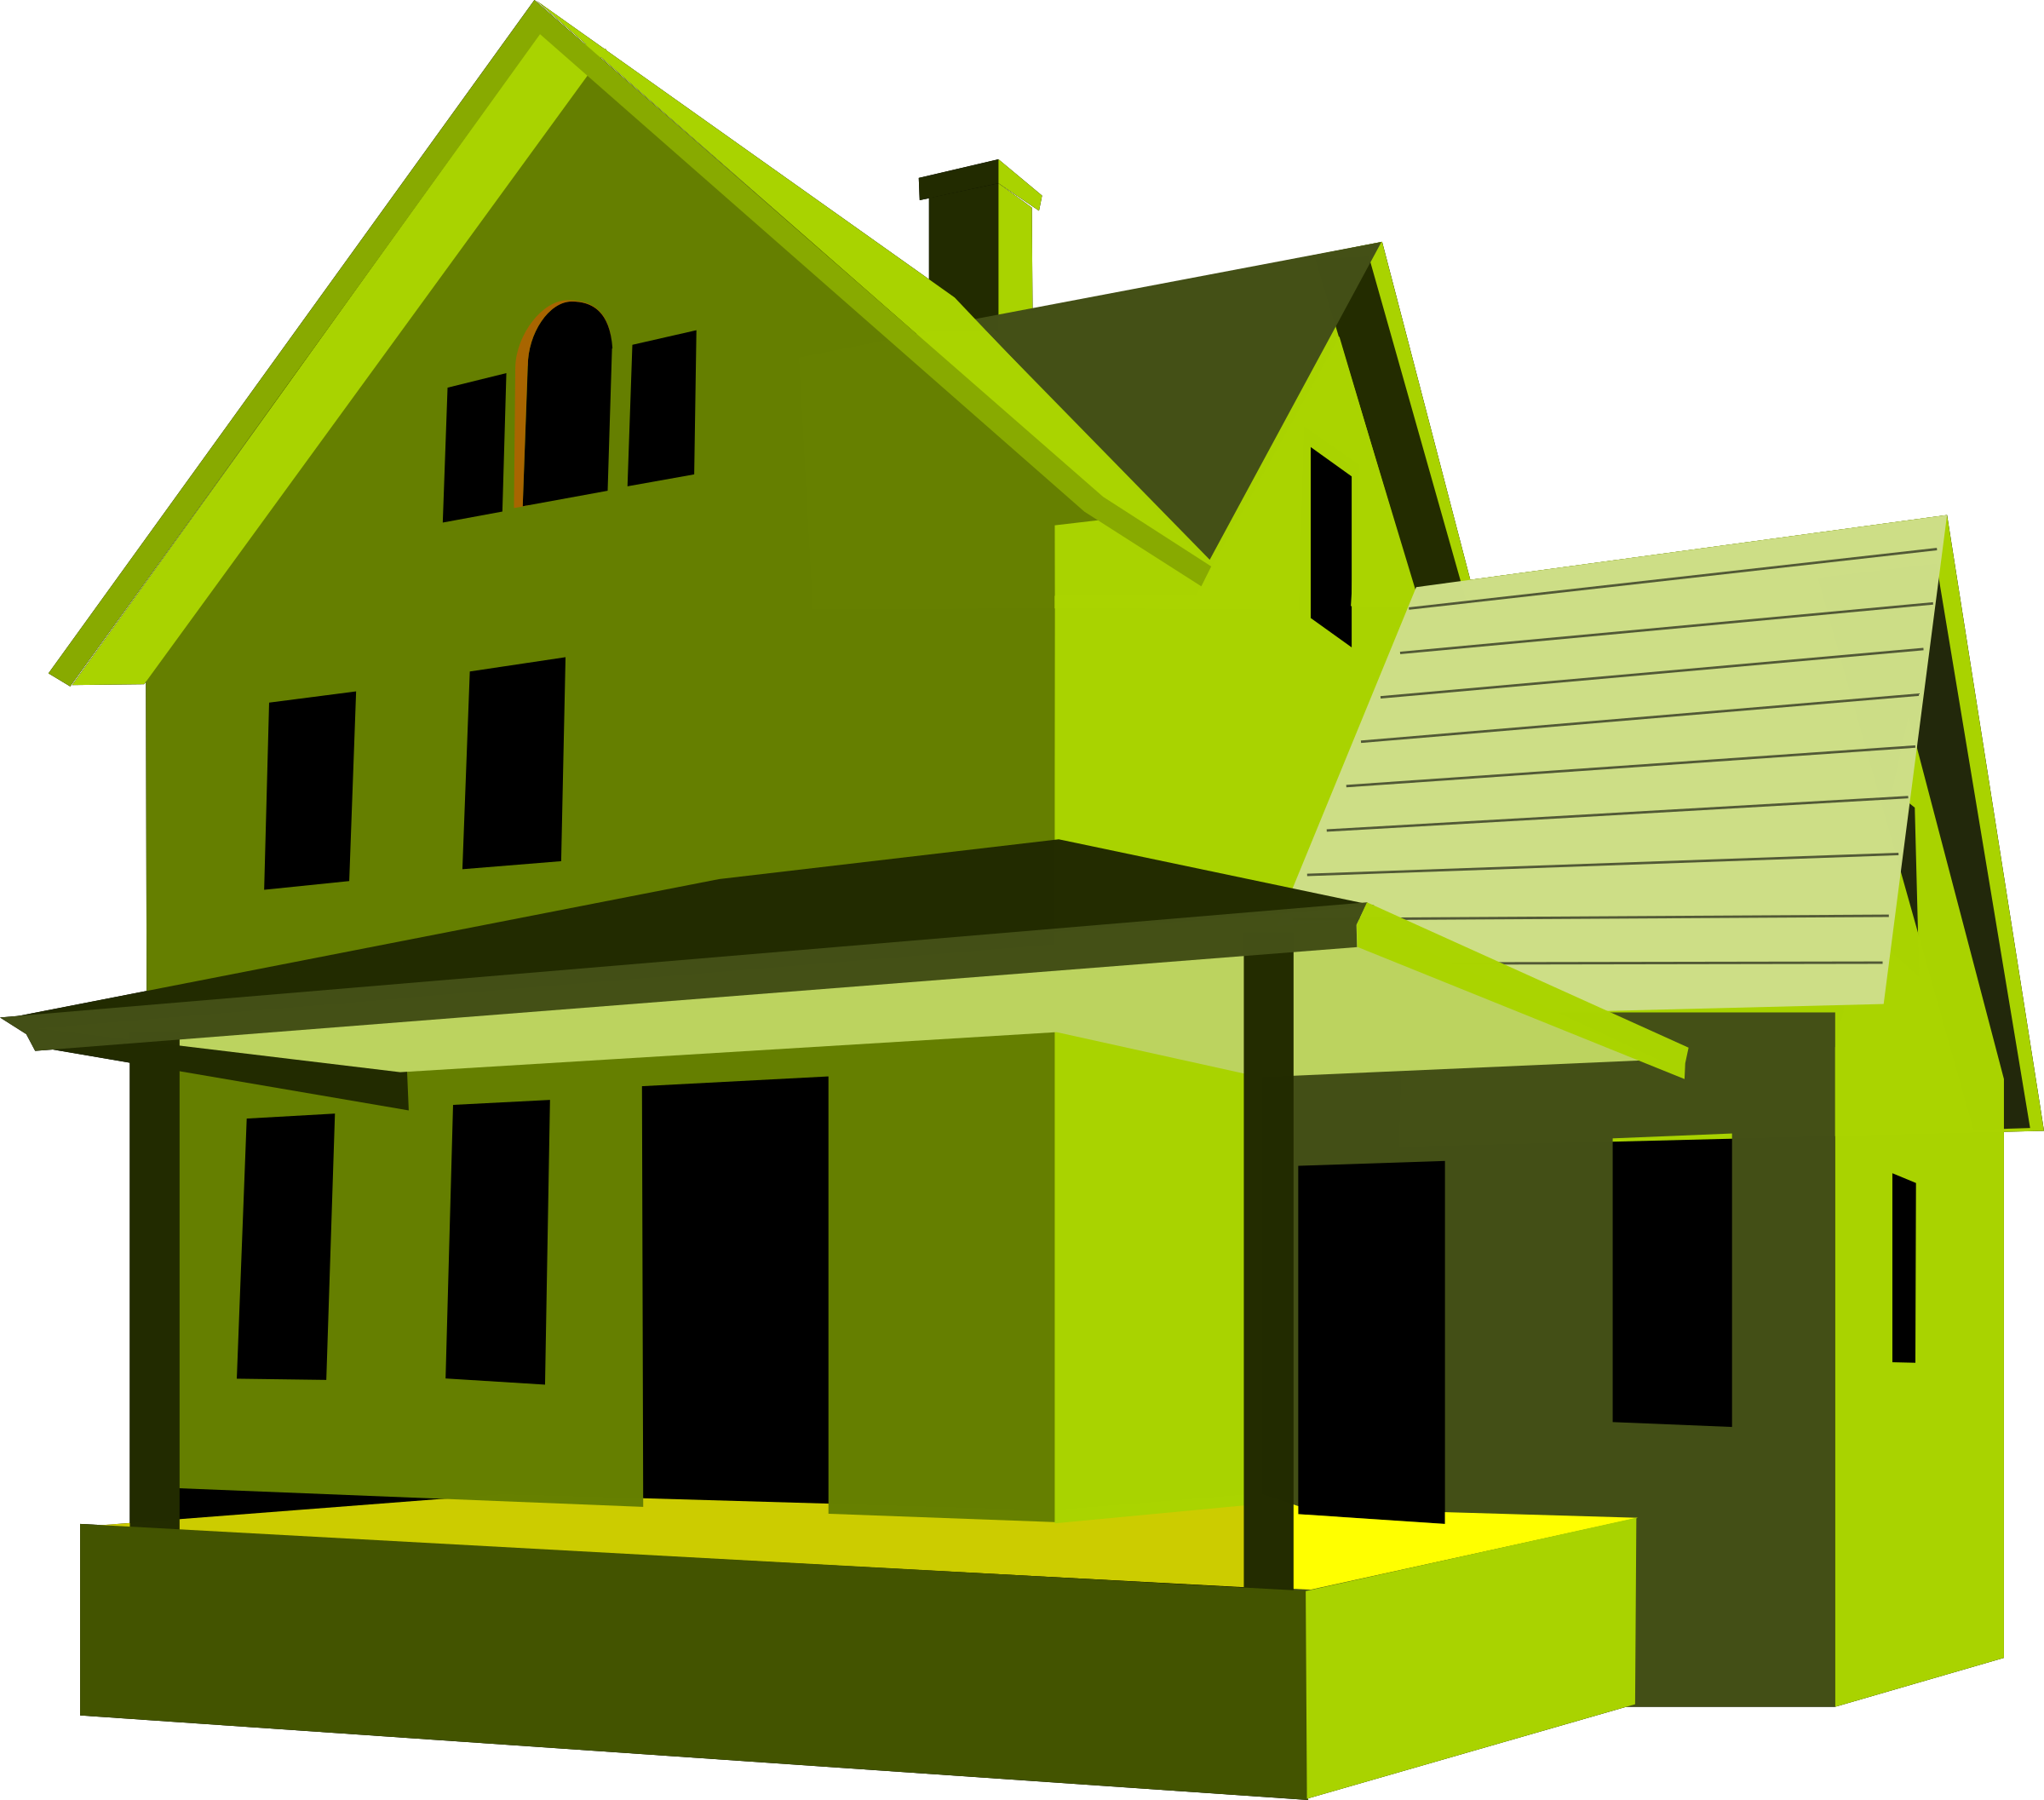 png freeuse House emoji free on. Roofing clipart home renovation